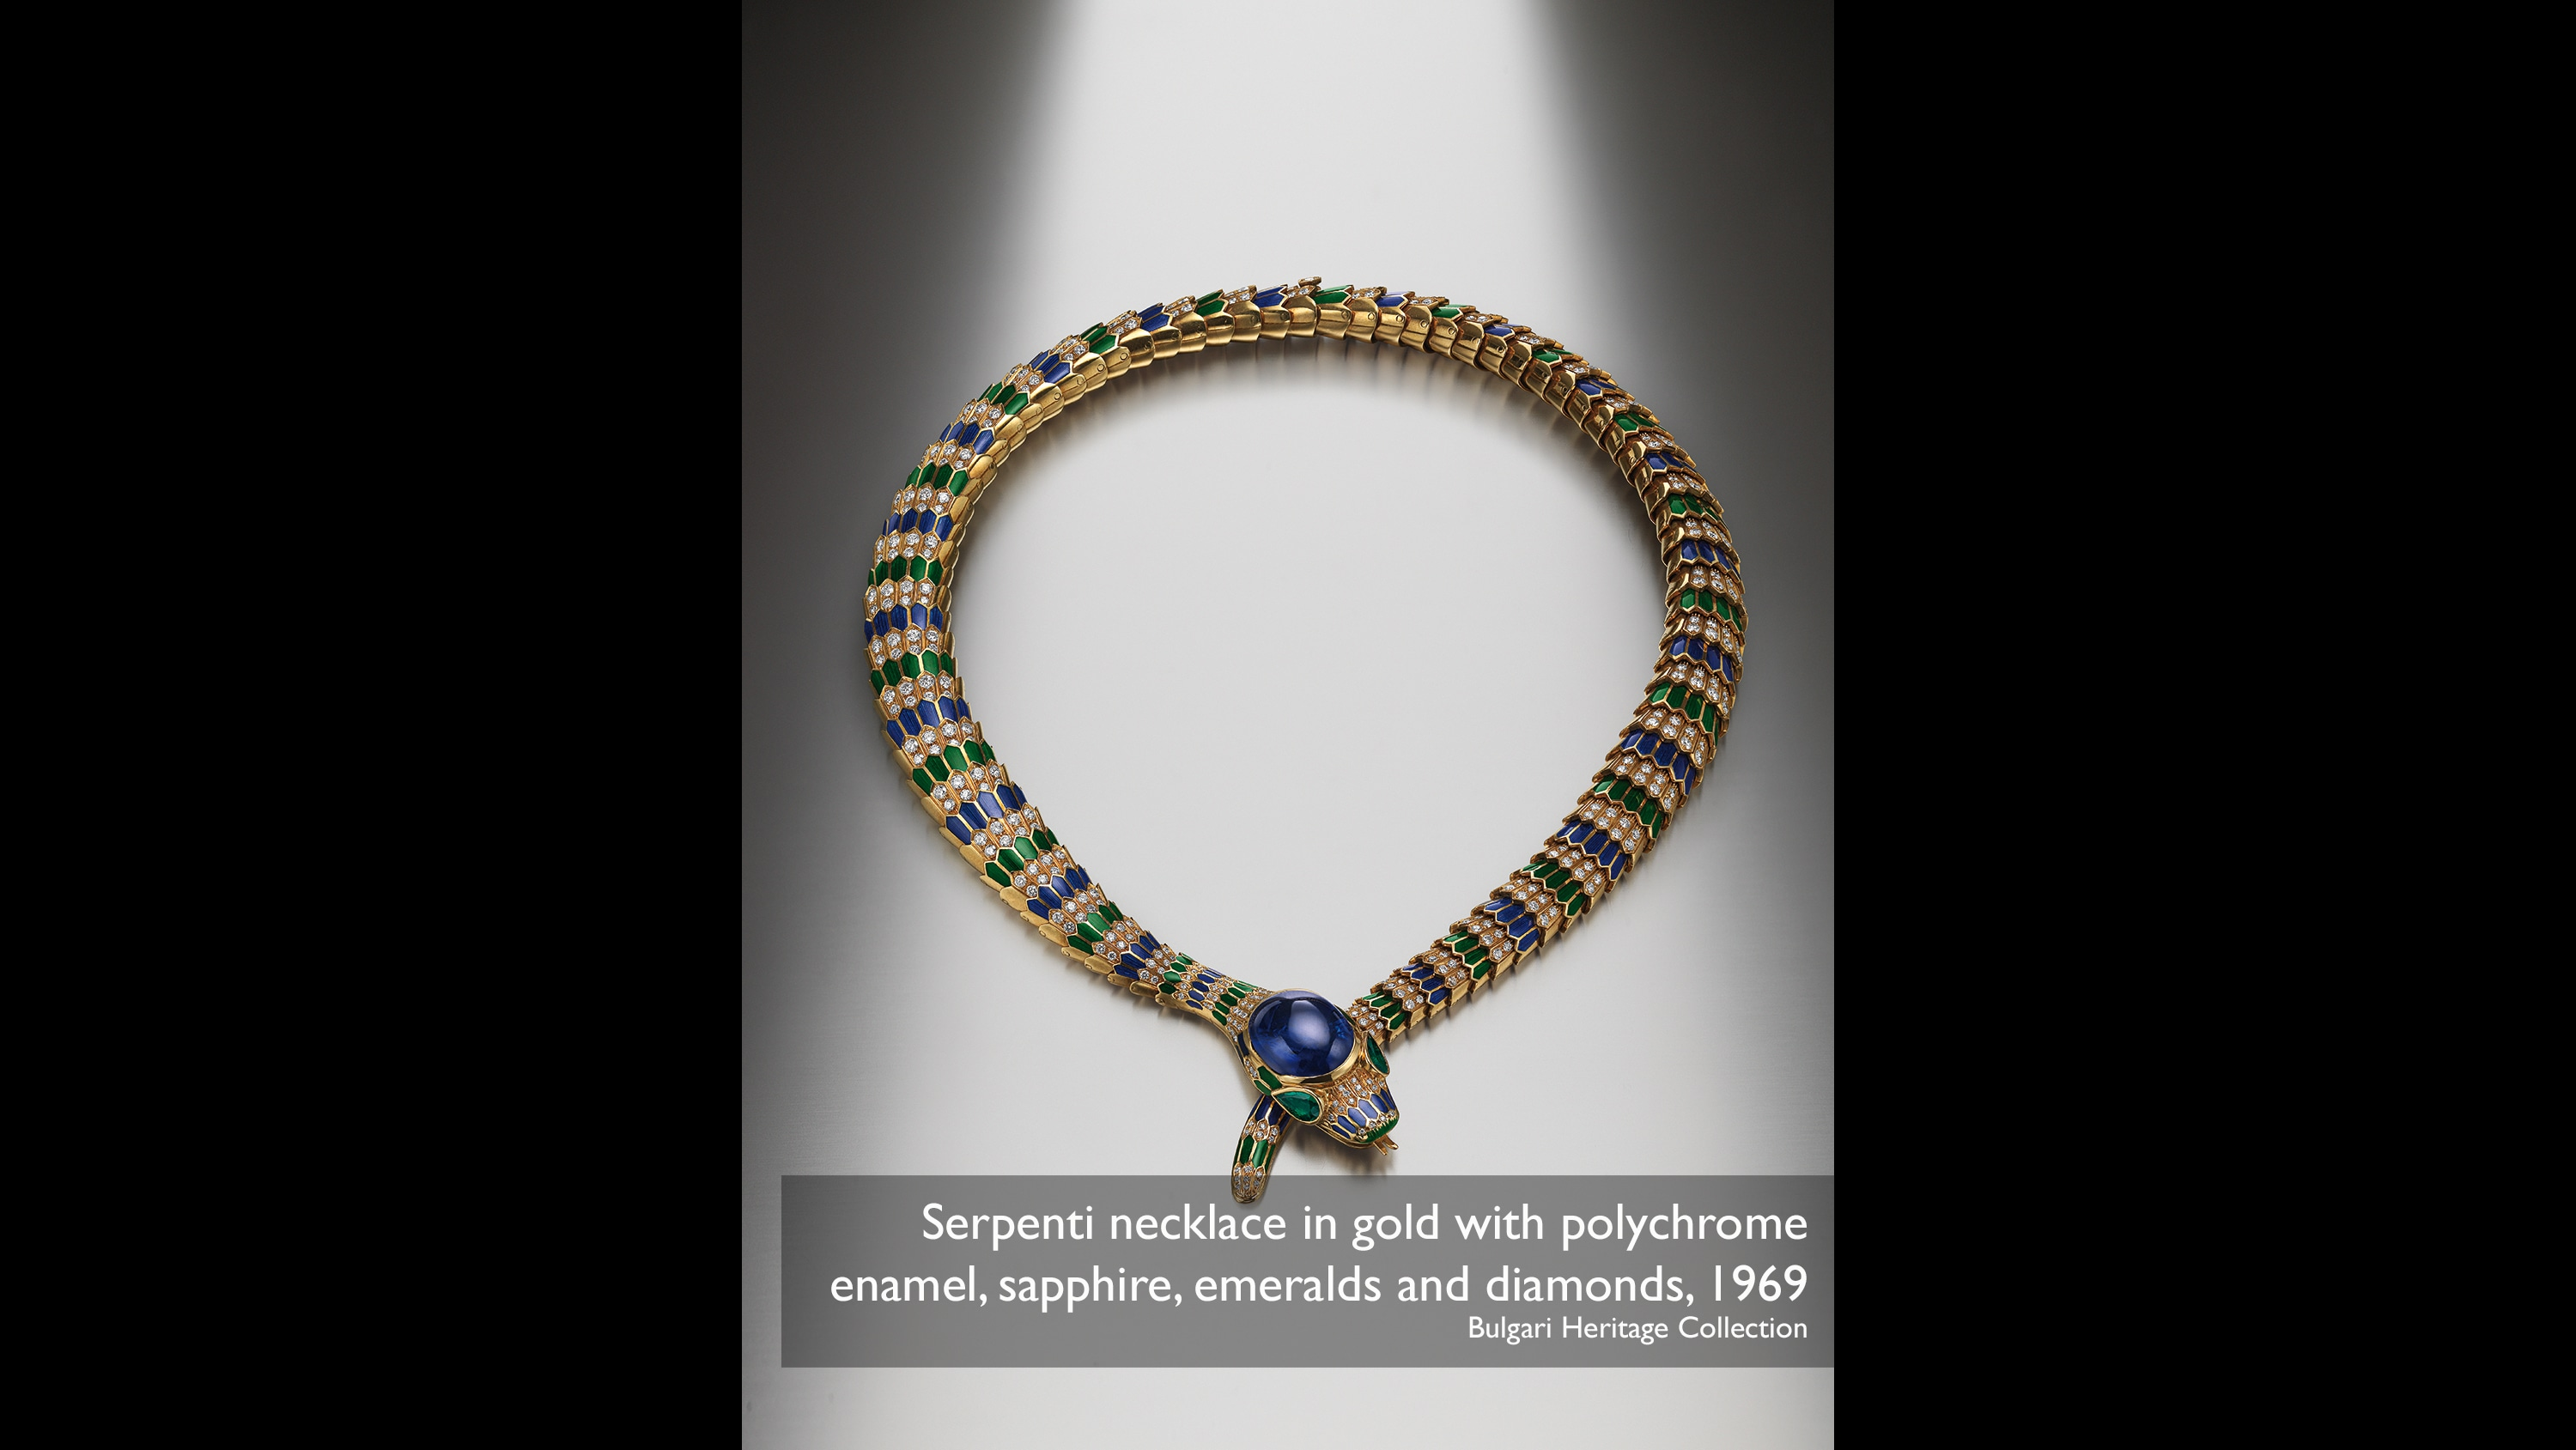 Serpenti necklace in gold with polychrome enamel, sapphire, emeralds and diamonds, 1969 Bulgari Heritage Collection